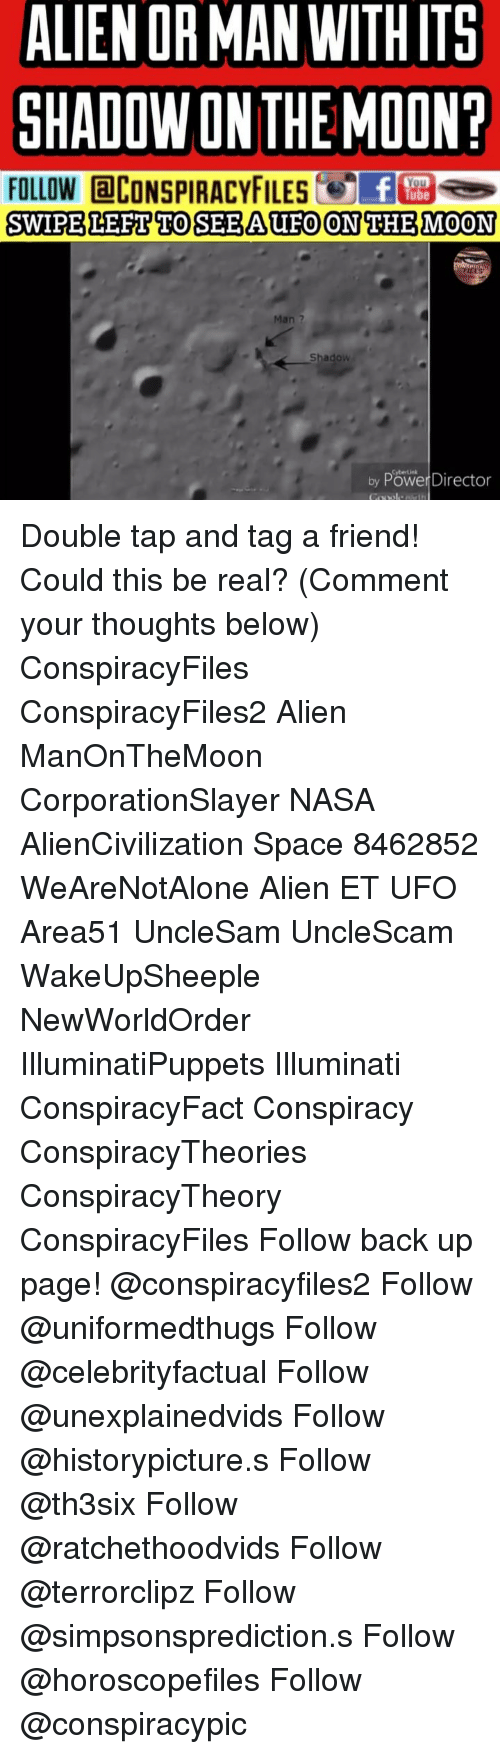 Illuminati, Memes, and Nasa: ALIEN OR MAN WITHITS  GHADOWONTHE MOON?  FOLLOW @CONSPIRACYFILESC E  SWIPELEFT TOSEEAUFO ON THEMOON  Man ?  Cybertink  by Power Director Double tap and tag a friend! Could this be real? (Comment your thoughts below) ConspiracyFiles ConspiracyFiles2 Alien ManOnTheMoon CorporationSlayer NASA AlienCivilization Space 8462852 WeAreNotAlone Alien ET UFO Area51 UncleSam UncleScam WakeUpSheeple NewWorldOrder IlluminatiPuppets Illuminati ConspiracyFact Conspiracy ConspiracyTheories ConspiracyTheory ConspiracyFiles Follow back up page! @conspiracyfiles2 Follow @uniformedthugs Follow @celebrityfactual Follow @unexplainedvids Follow @historypicture.s Follow @th3six Follow @ratchethoodvids Follow @terrorclipz Follow @simpsonsprediction.s Follow @horoscopefiles Follow @conspiracypic